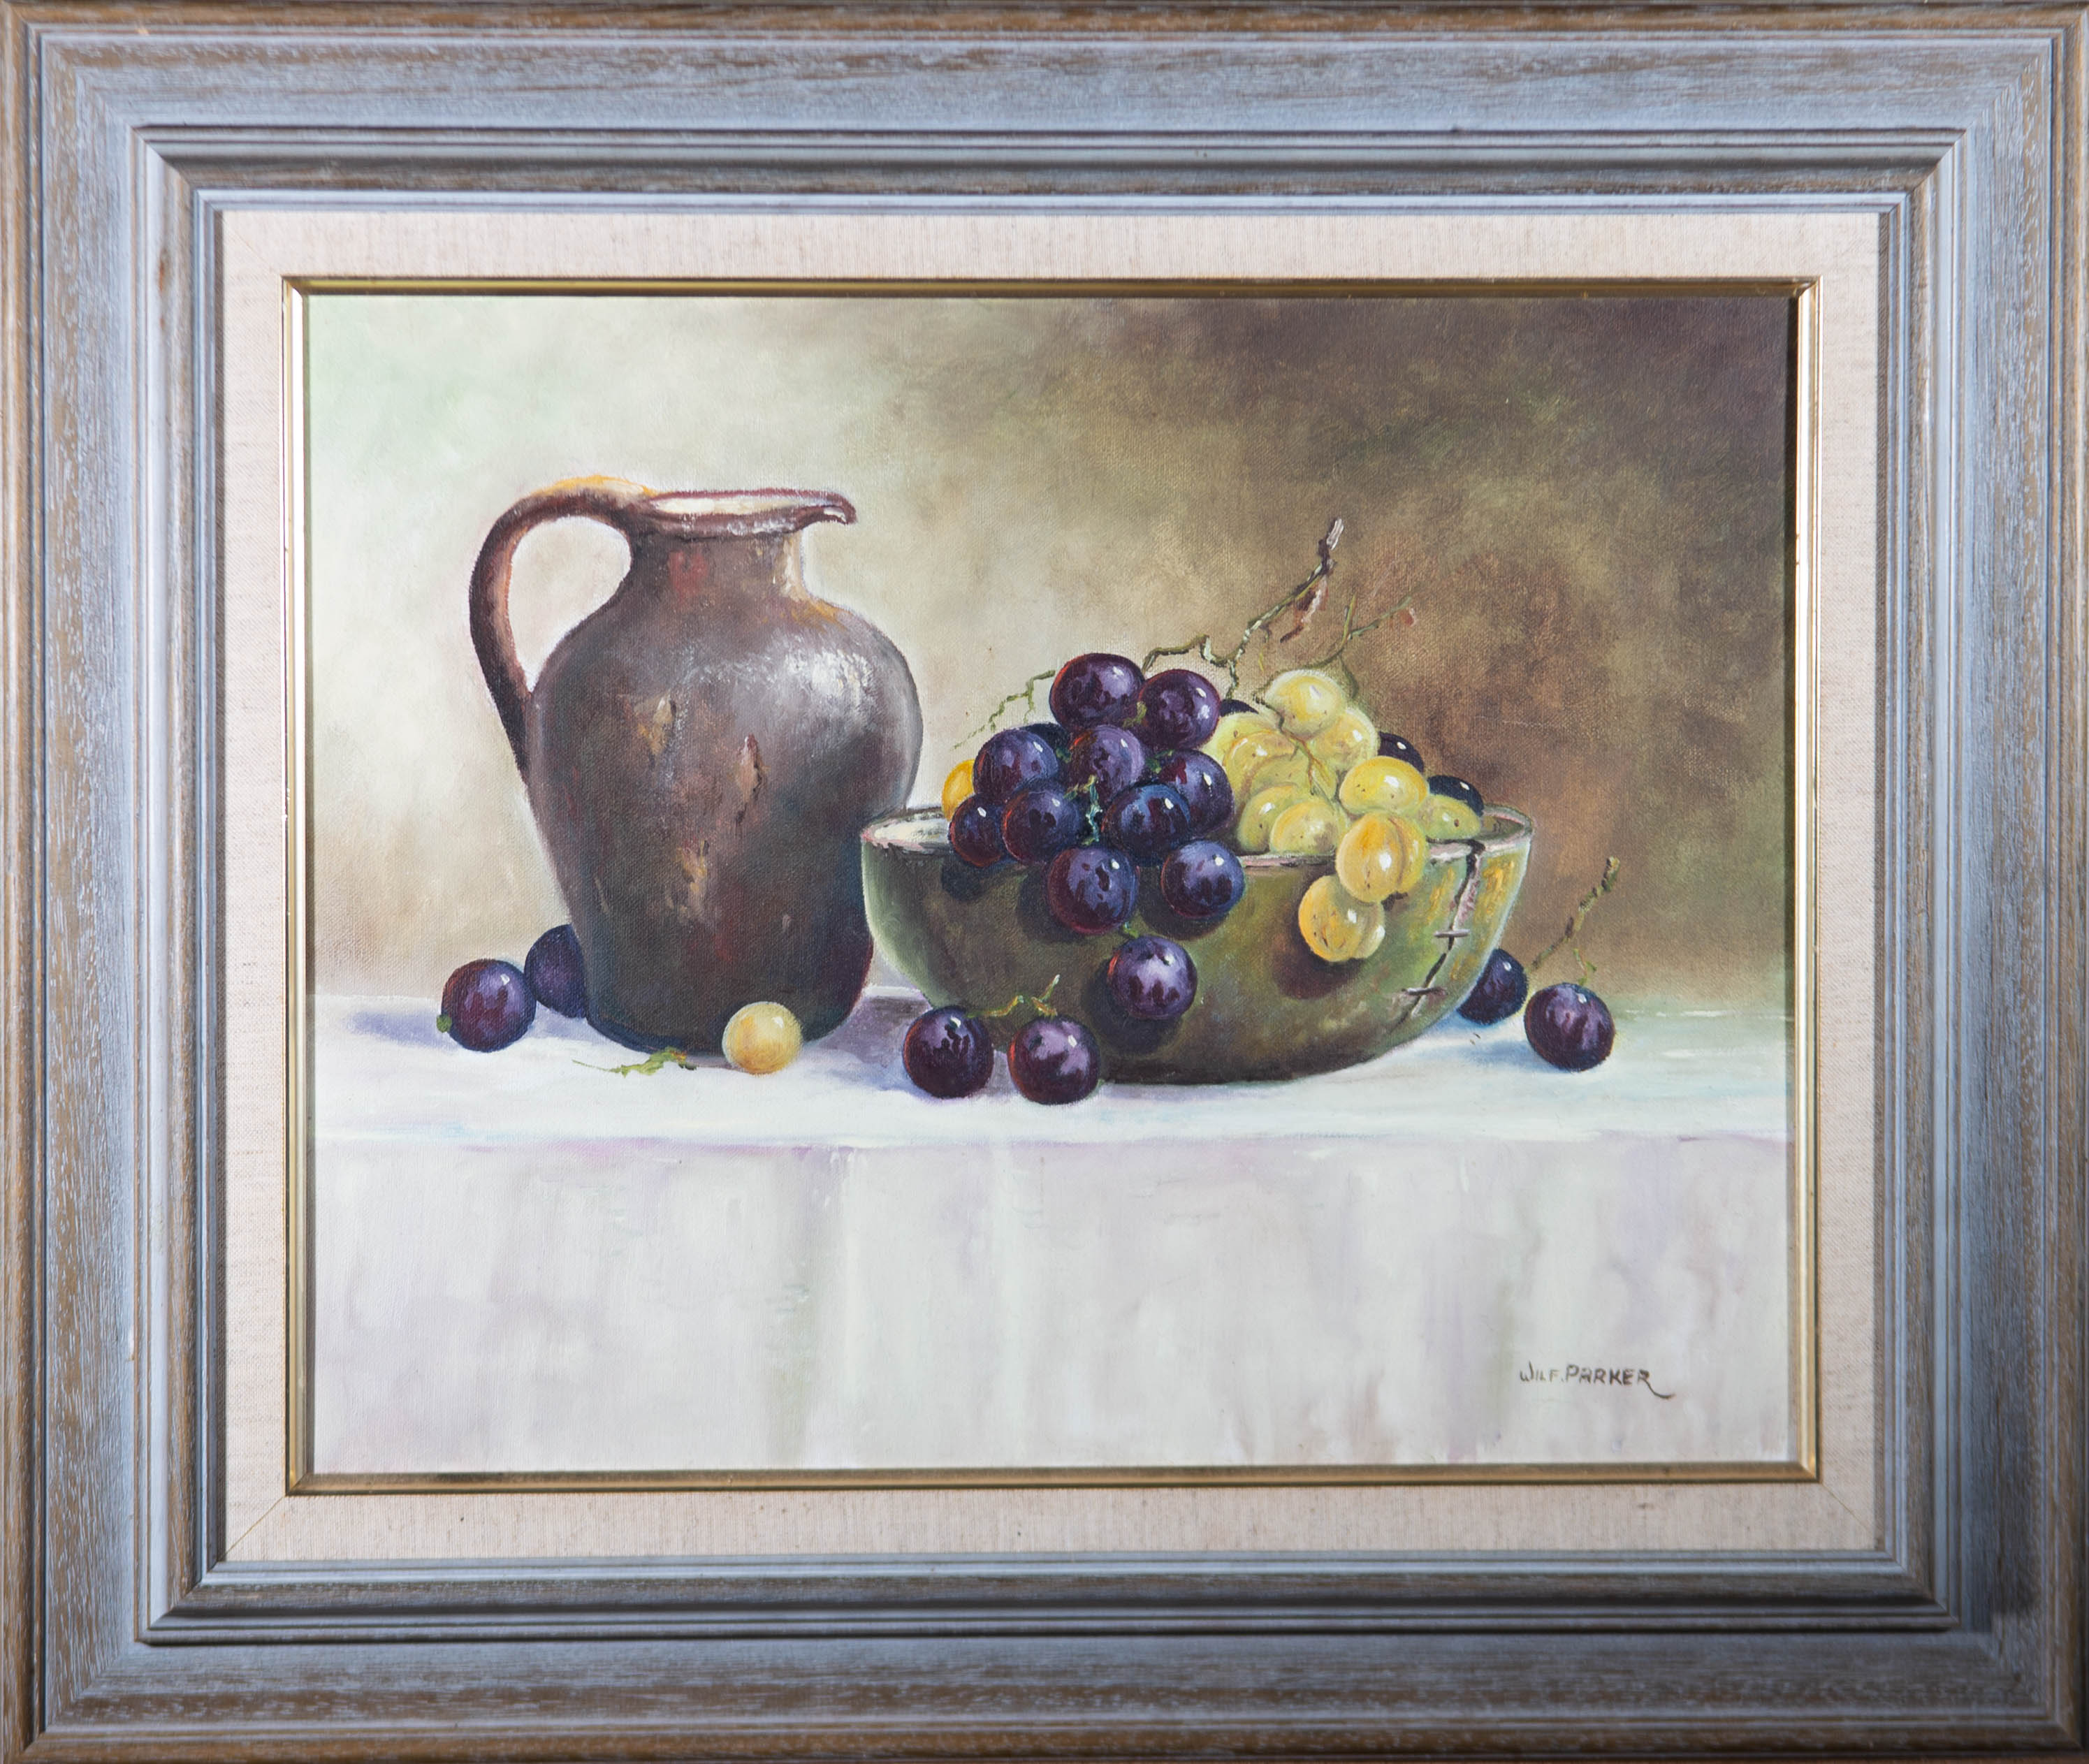 Wilf Parker - 20th Century Oil, Still Life with Grapes